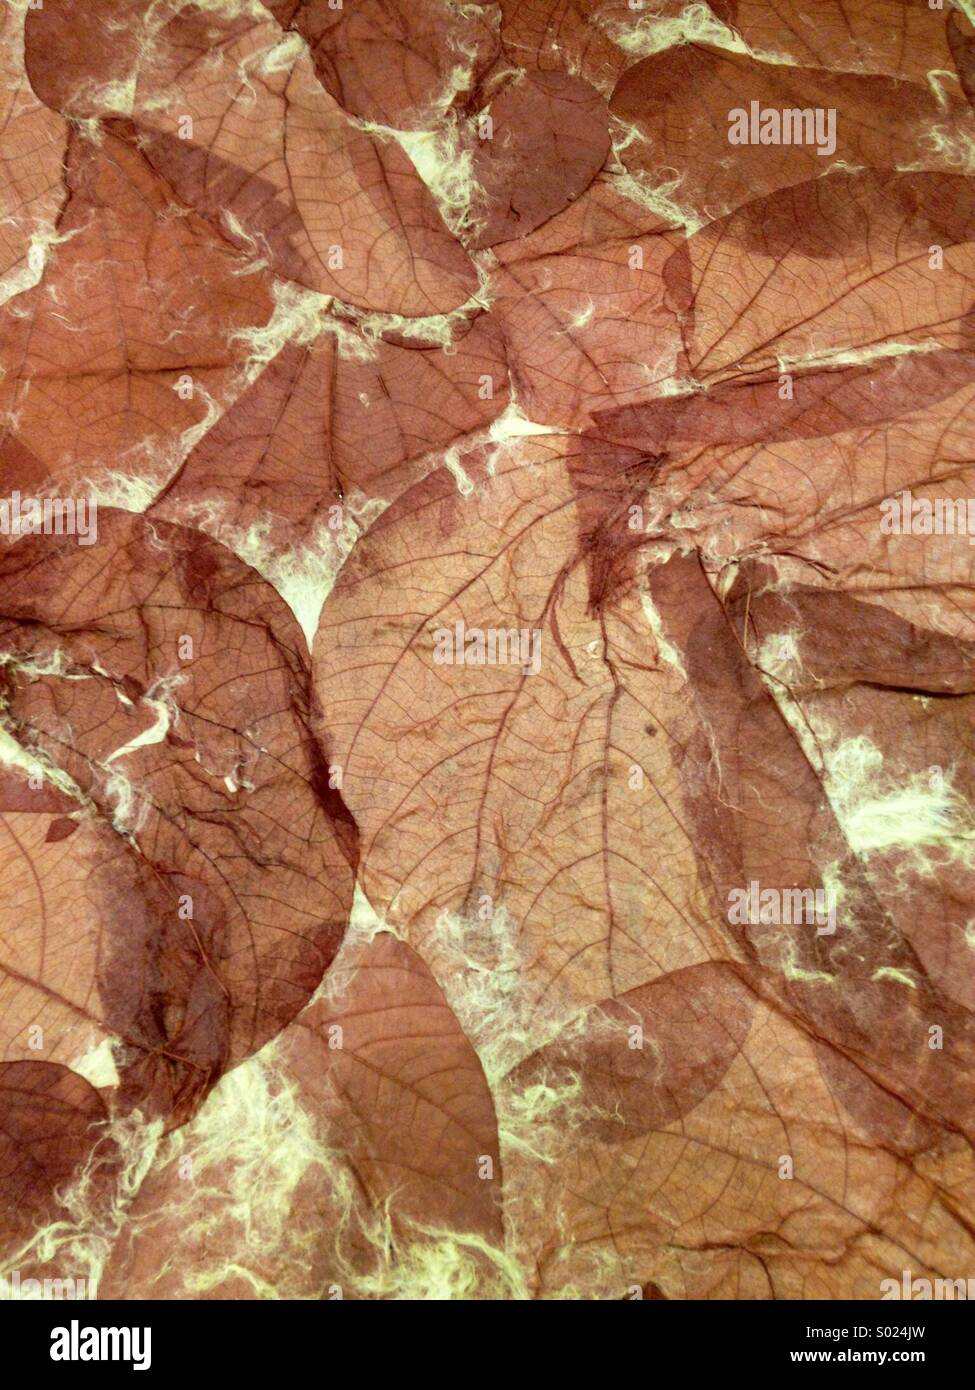 Dried leaves - Stock Image